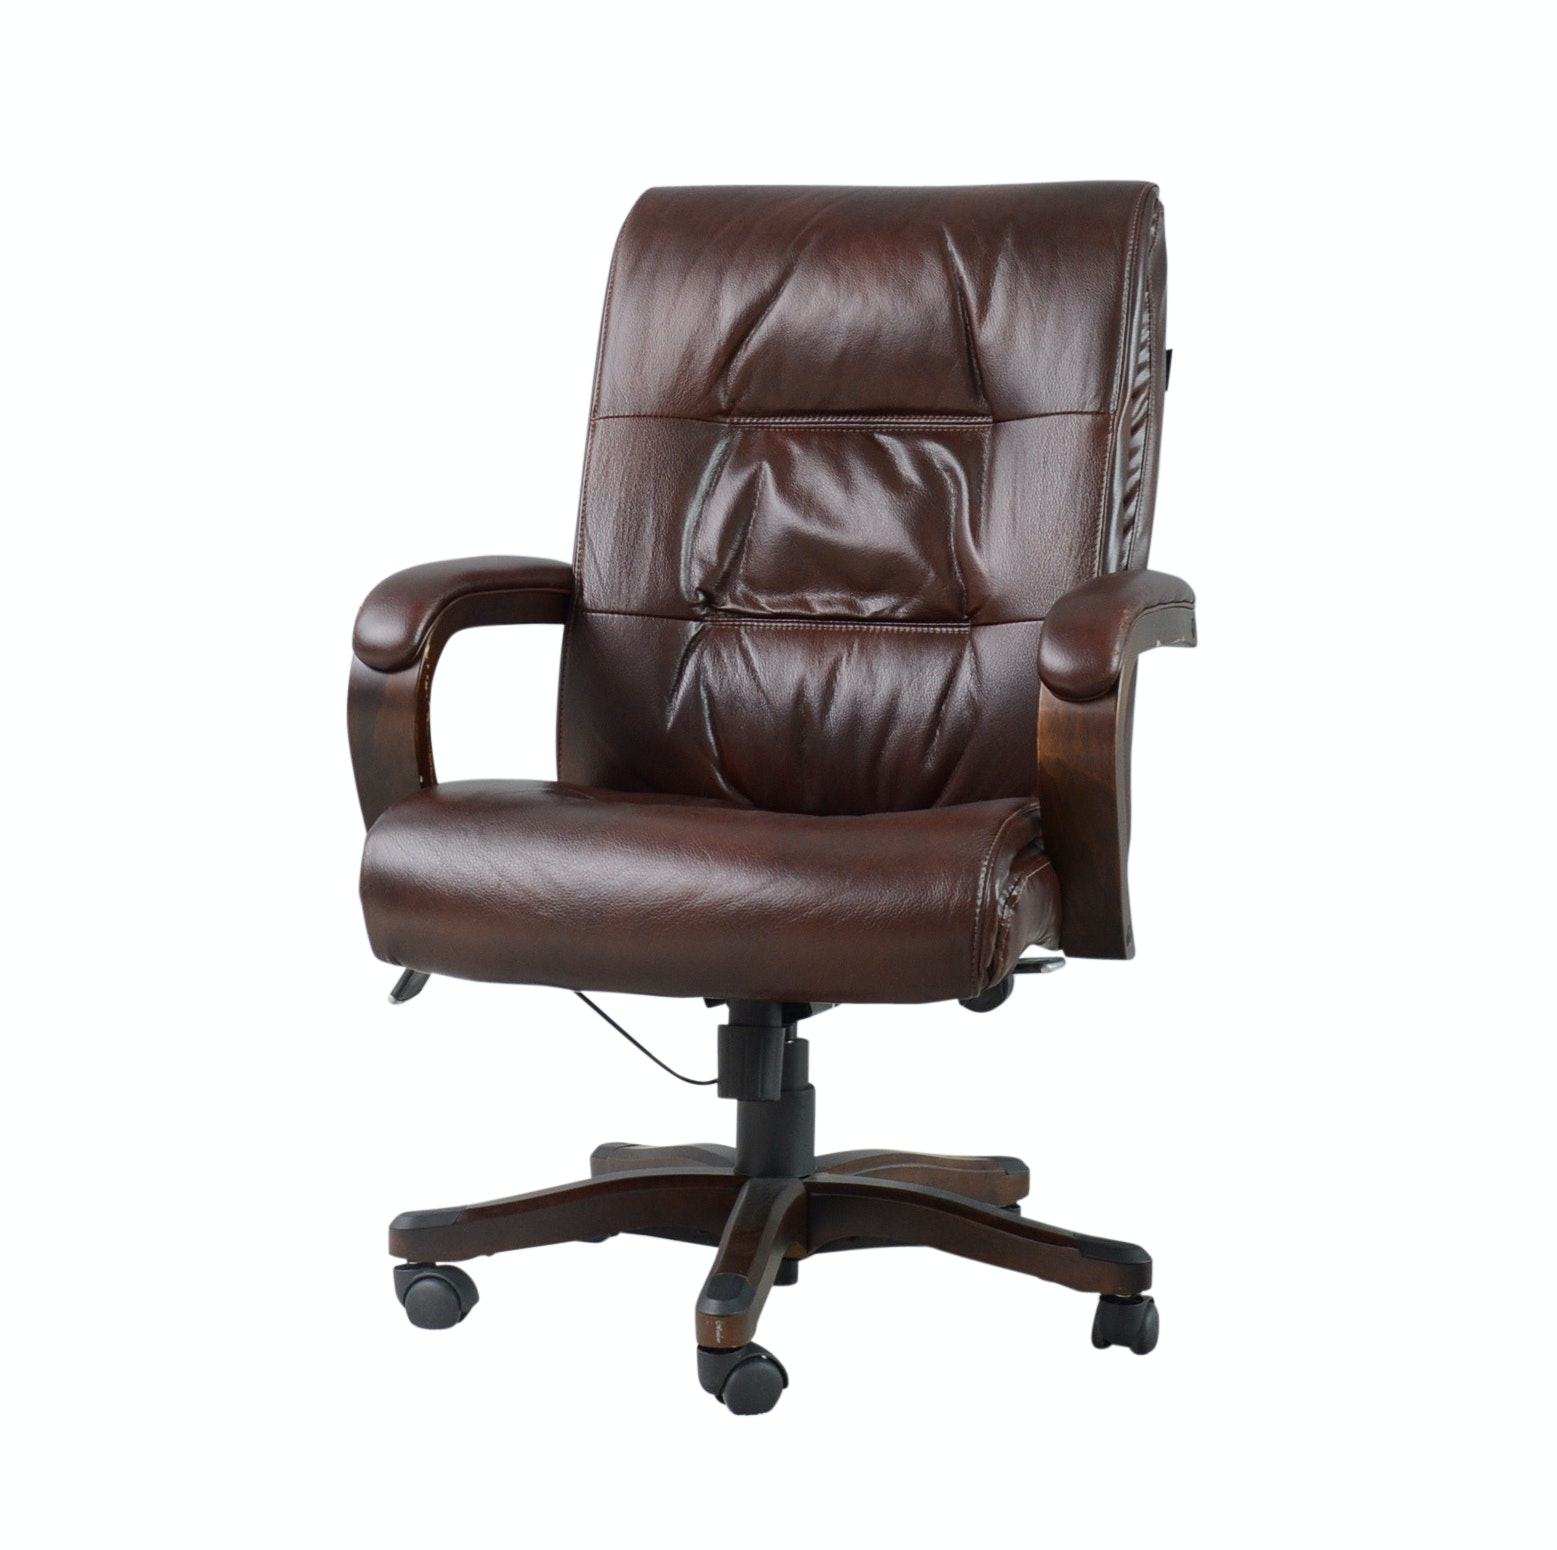 Broyhill Leather Adjustable Executive Chair